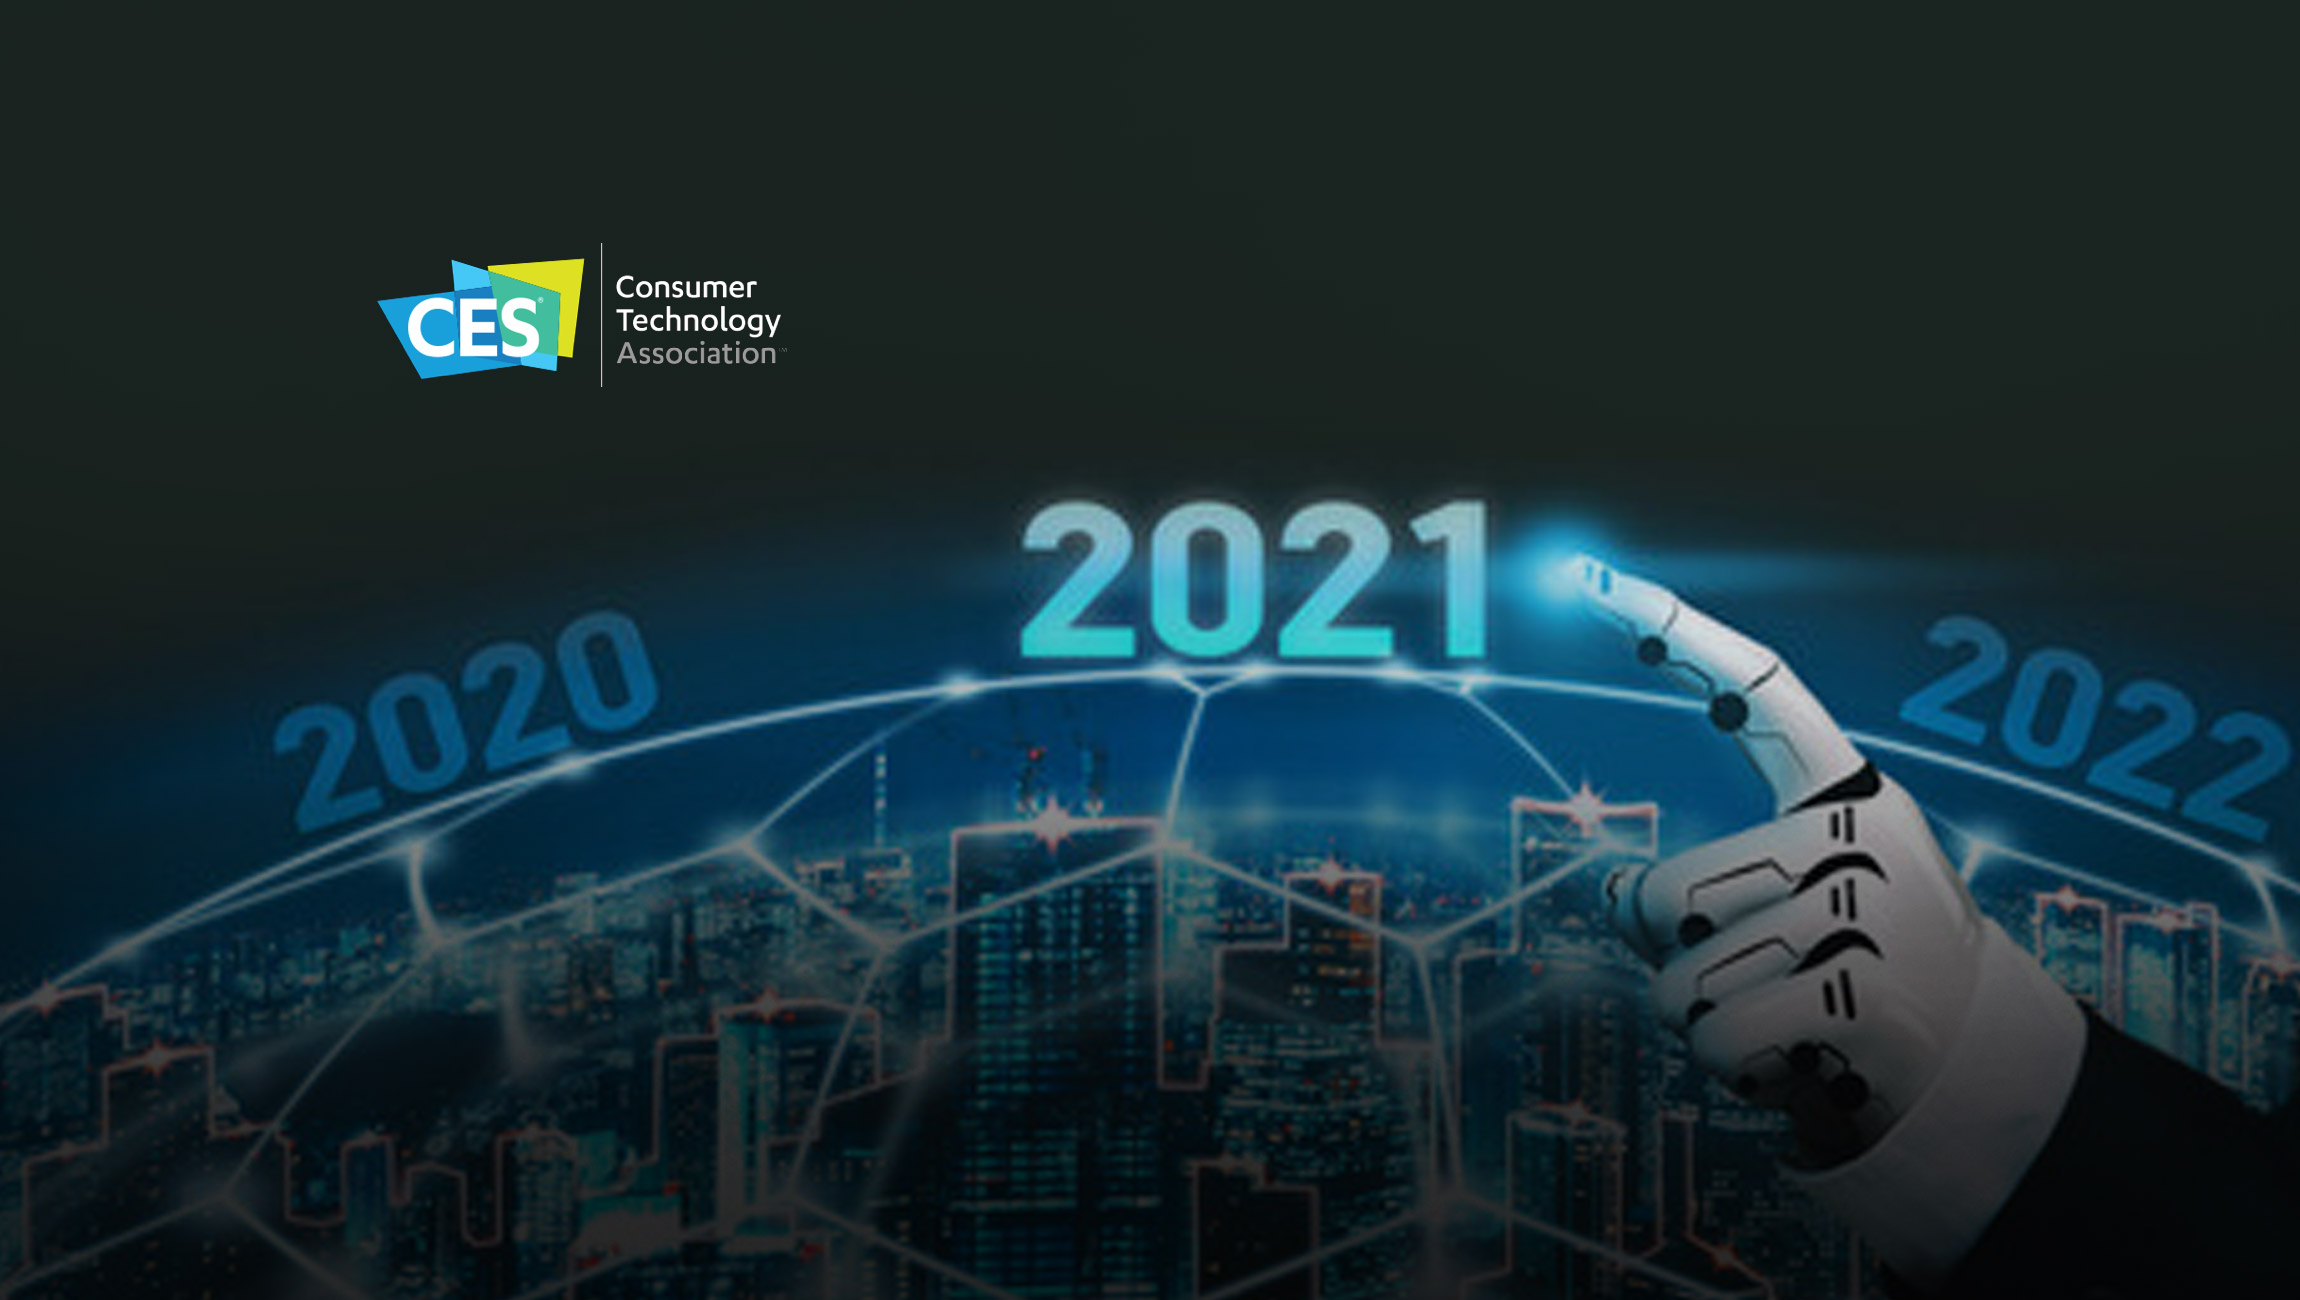 CES-2021-Makes-History-as-Largest-Digital-Tech-Industry-Event